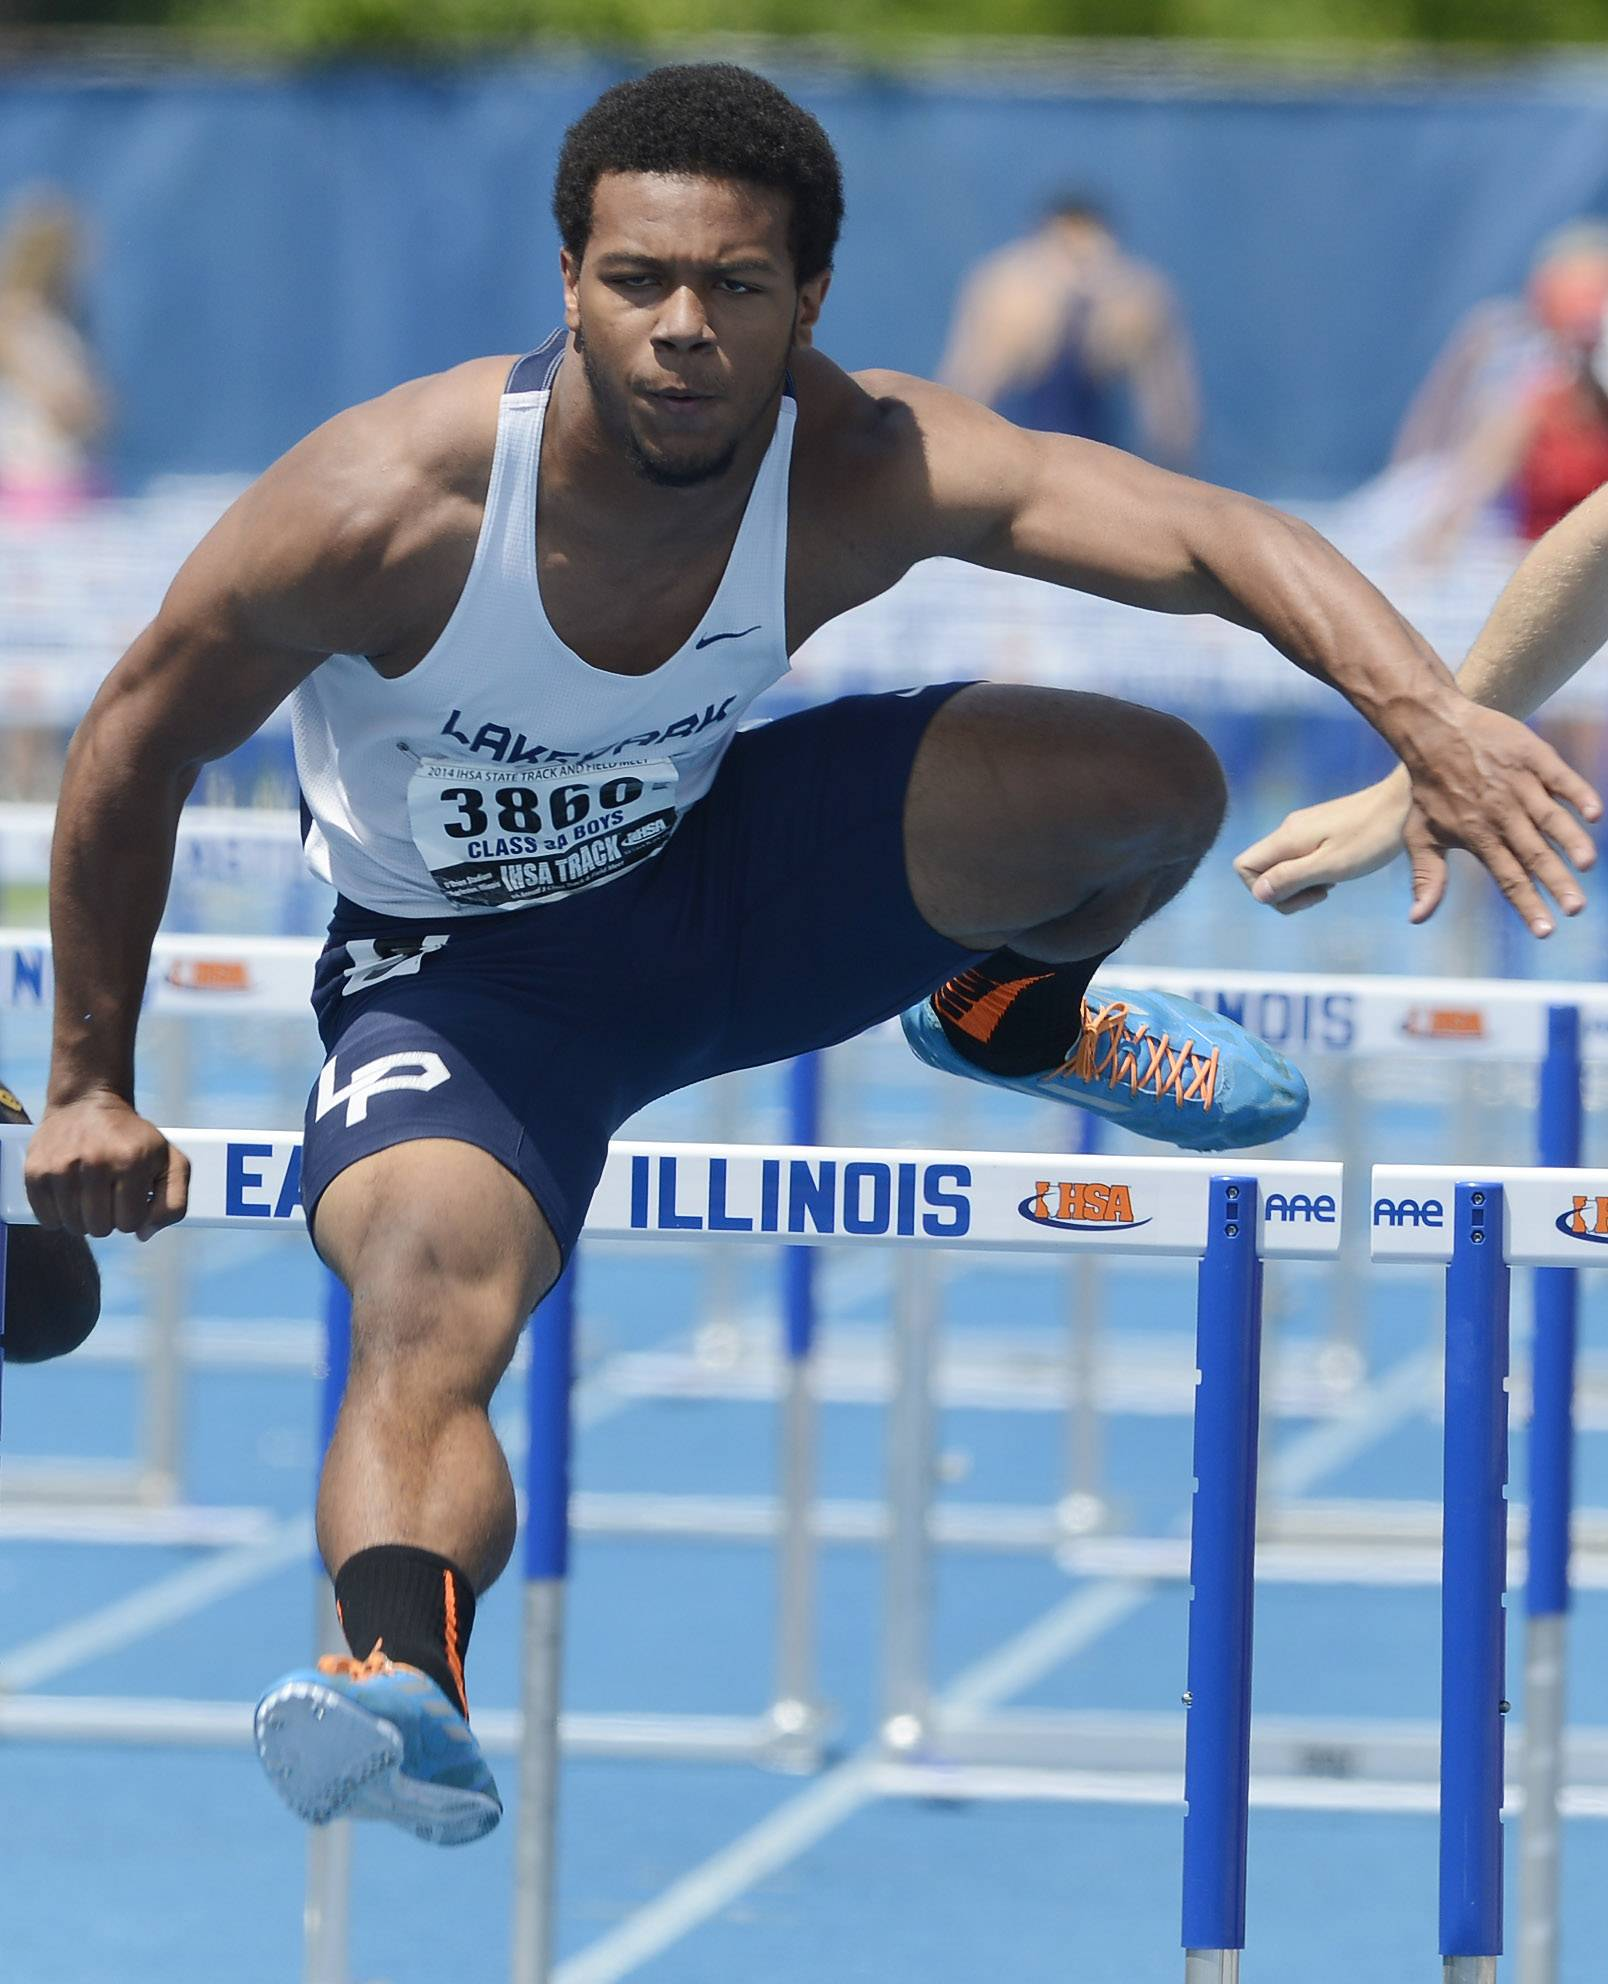 Lake Park's Antonio Shenault clears the last hurdle while competing in the 110-meter high hurdles during the boys Class 3A state track and field preliminaries in Charleston Friday.